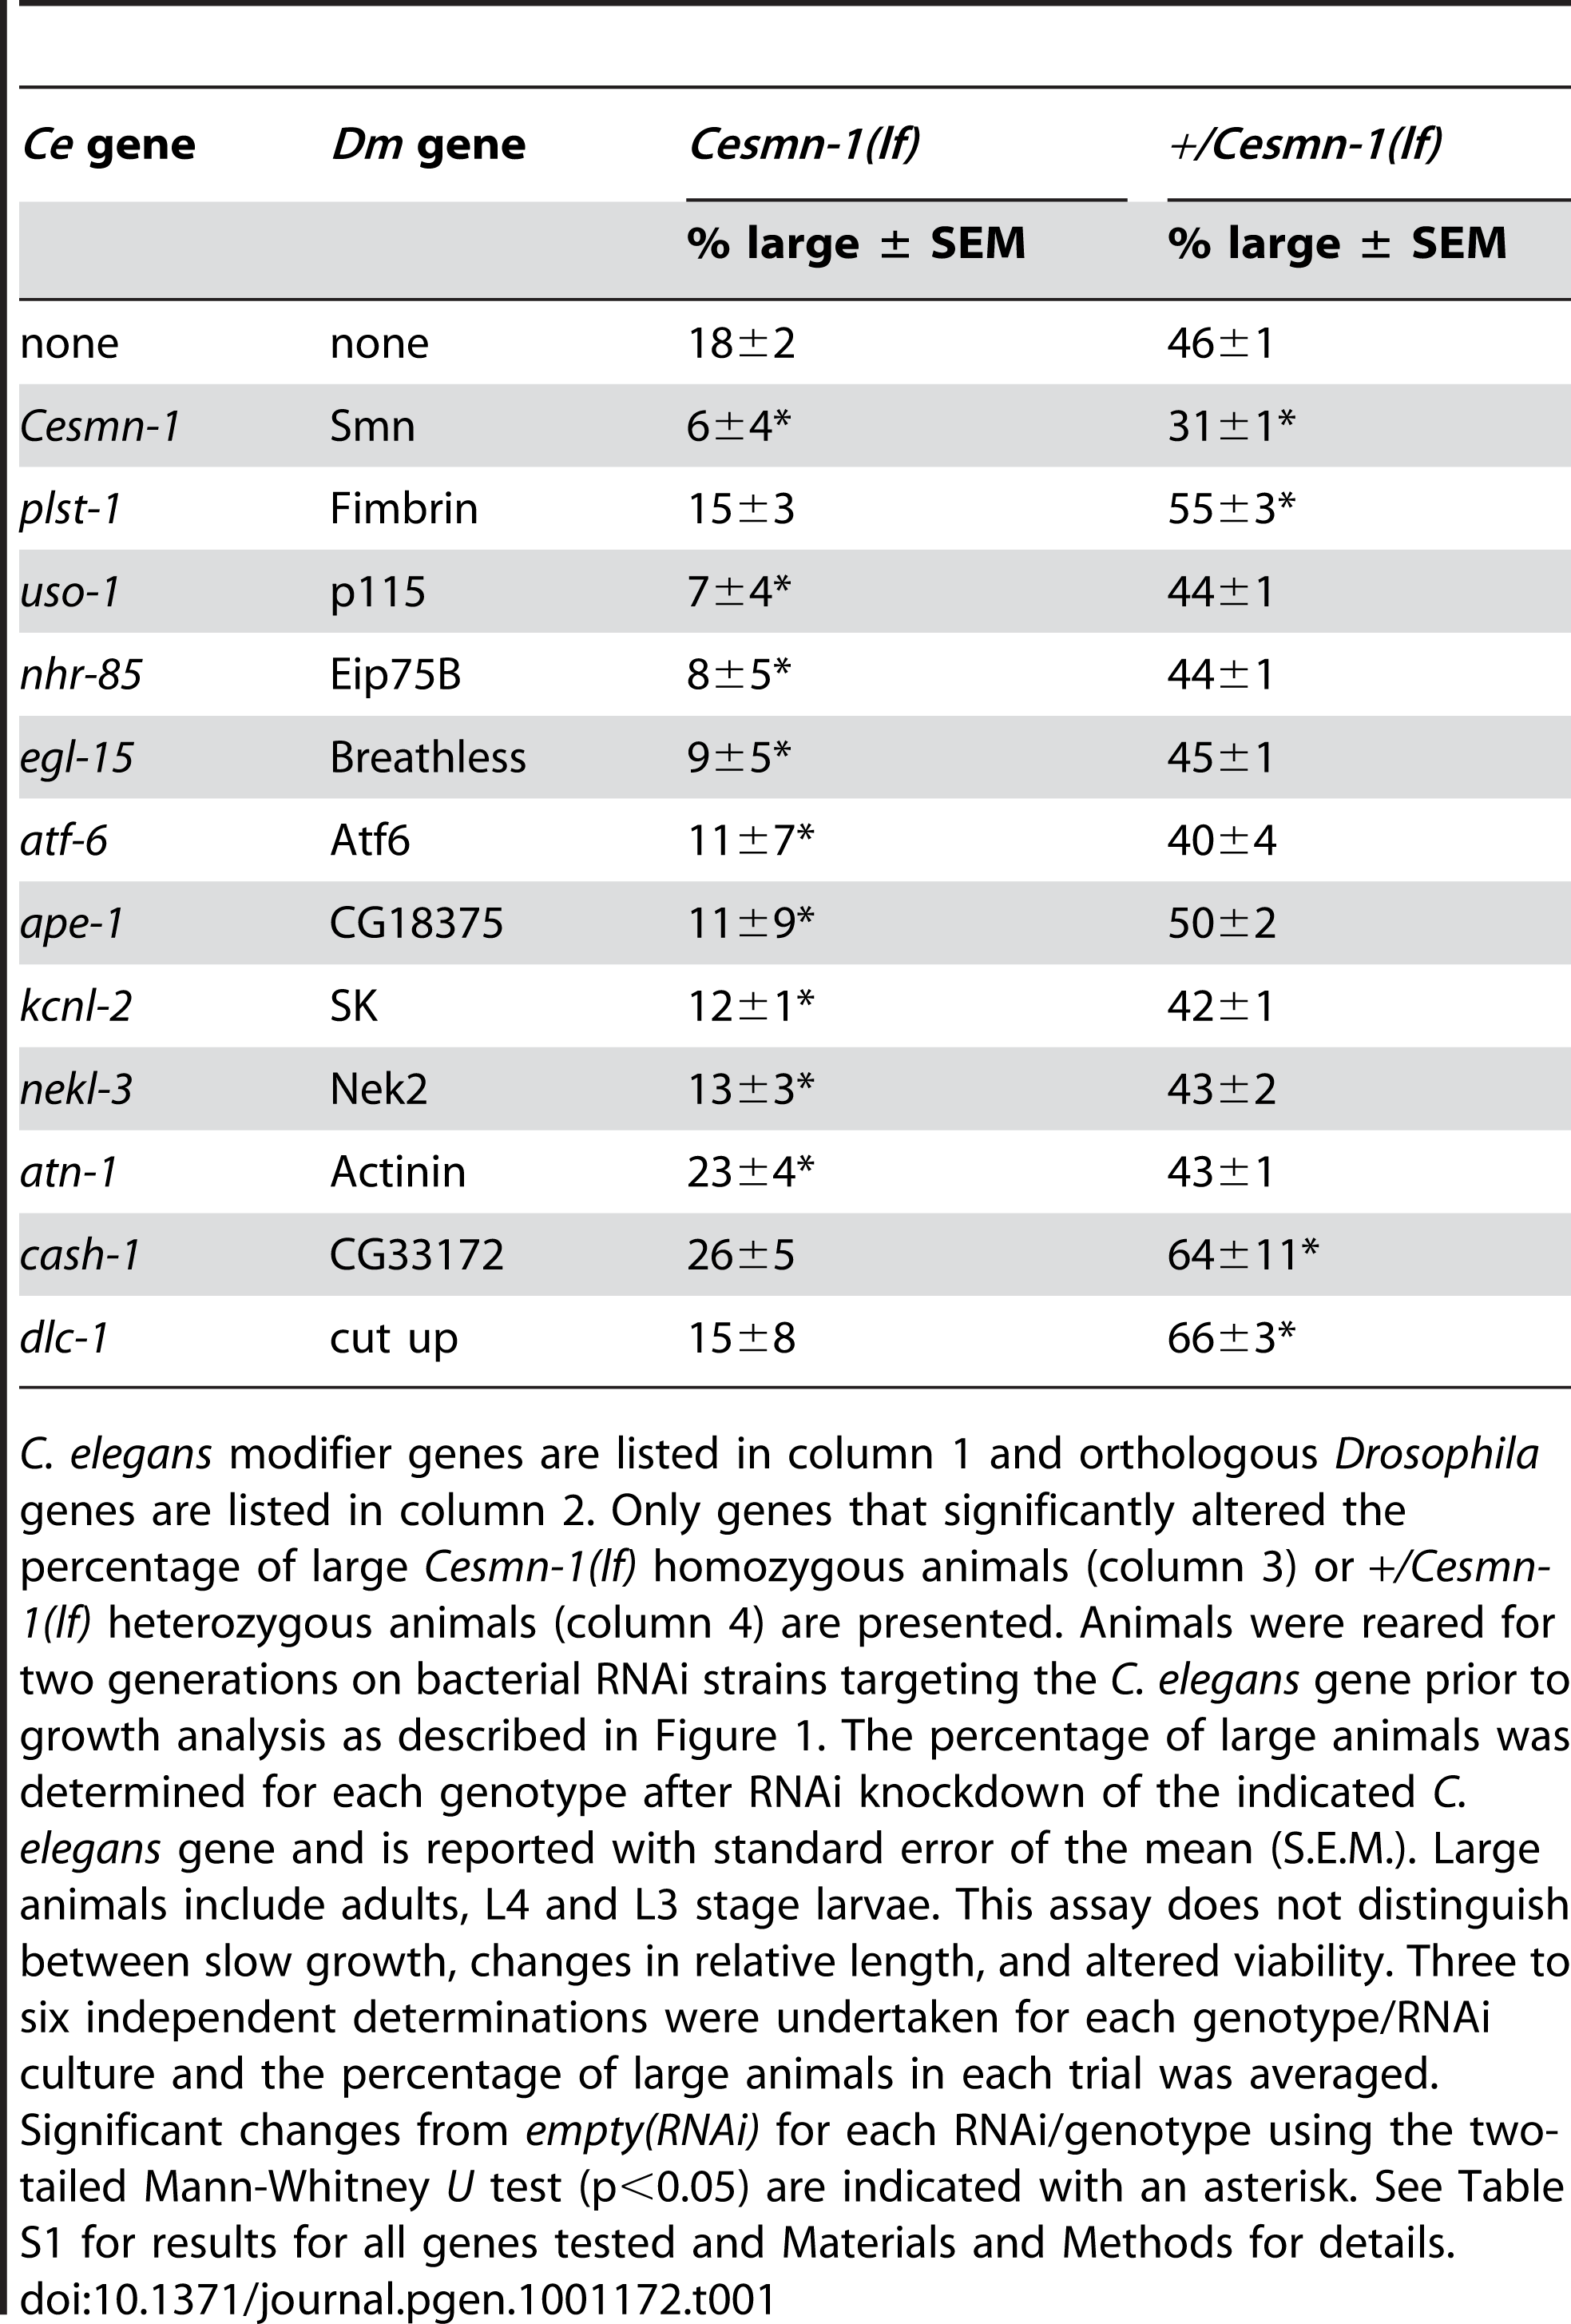 Conserved genes modify <i>Cesmn-1(lf)</i> defects in the growth assay.